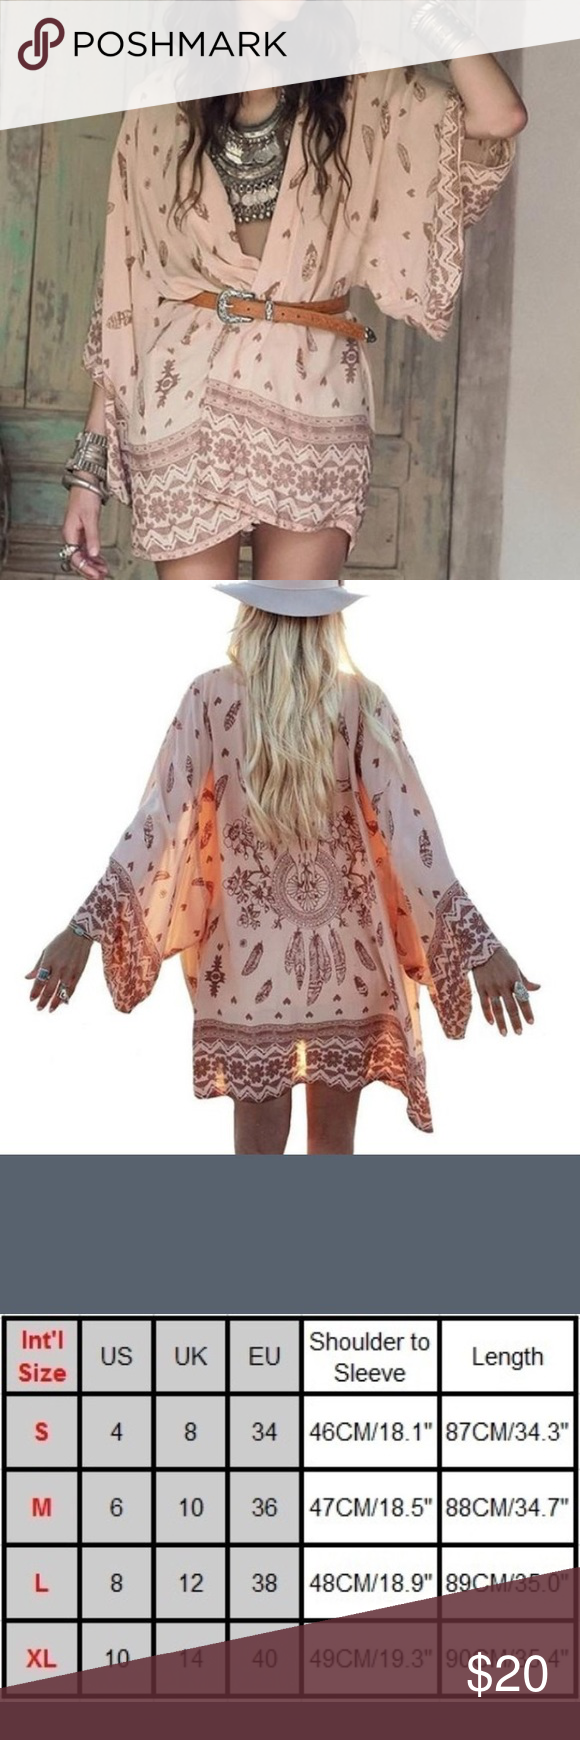 Gorgeous lightweight cardigan Super thin and lightweight, perfect for summer. Throw it over a crop top and shorts or your favorite dress Sweaters Cardigans